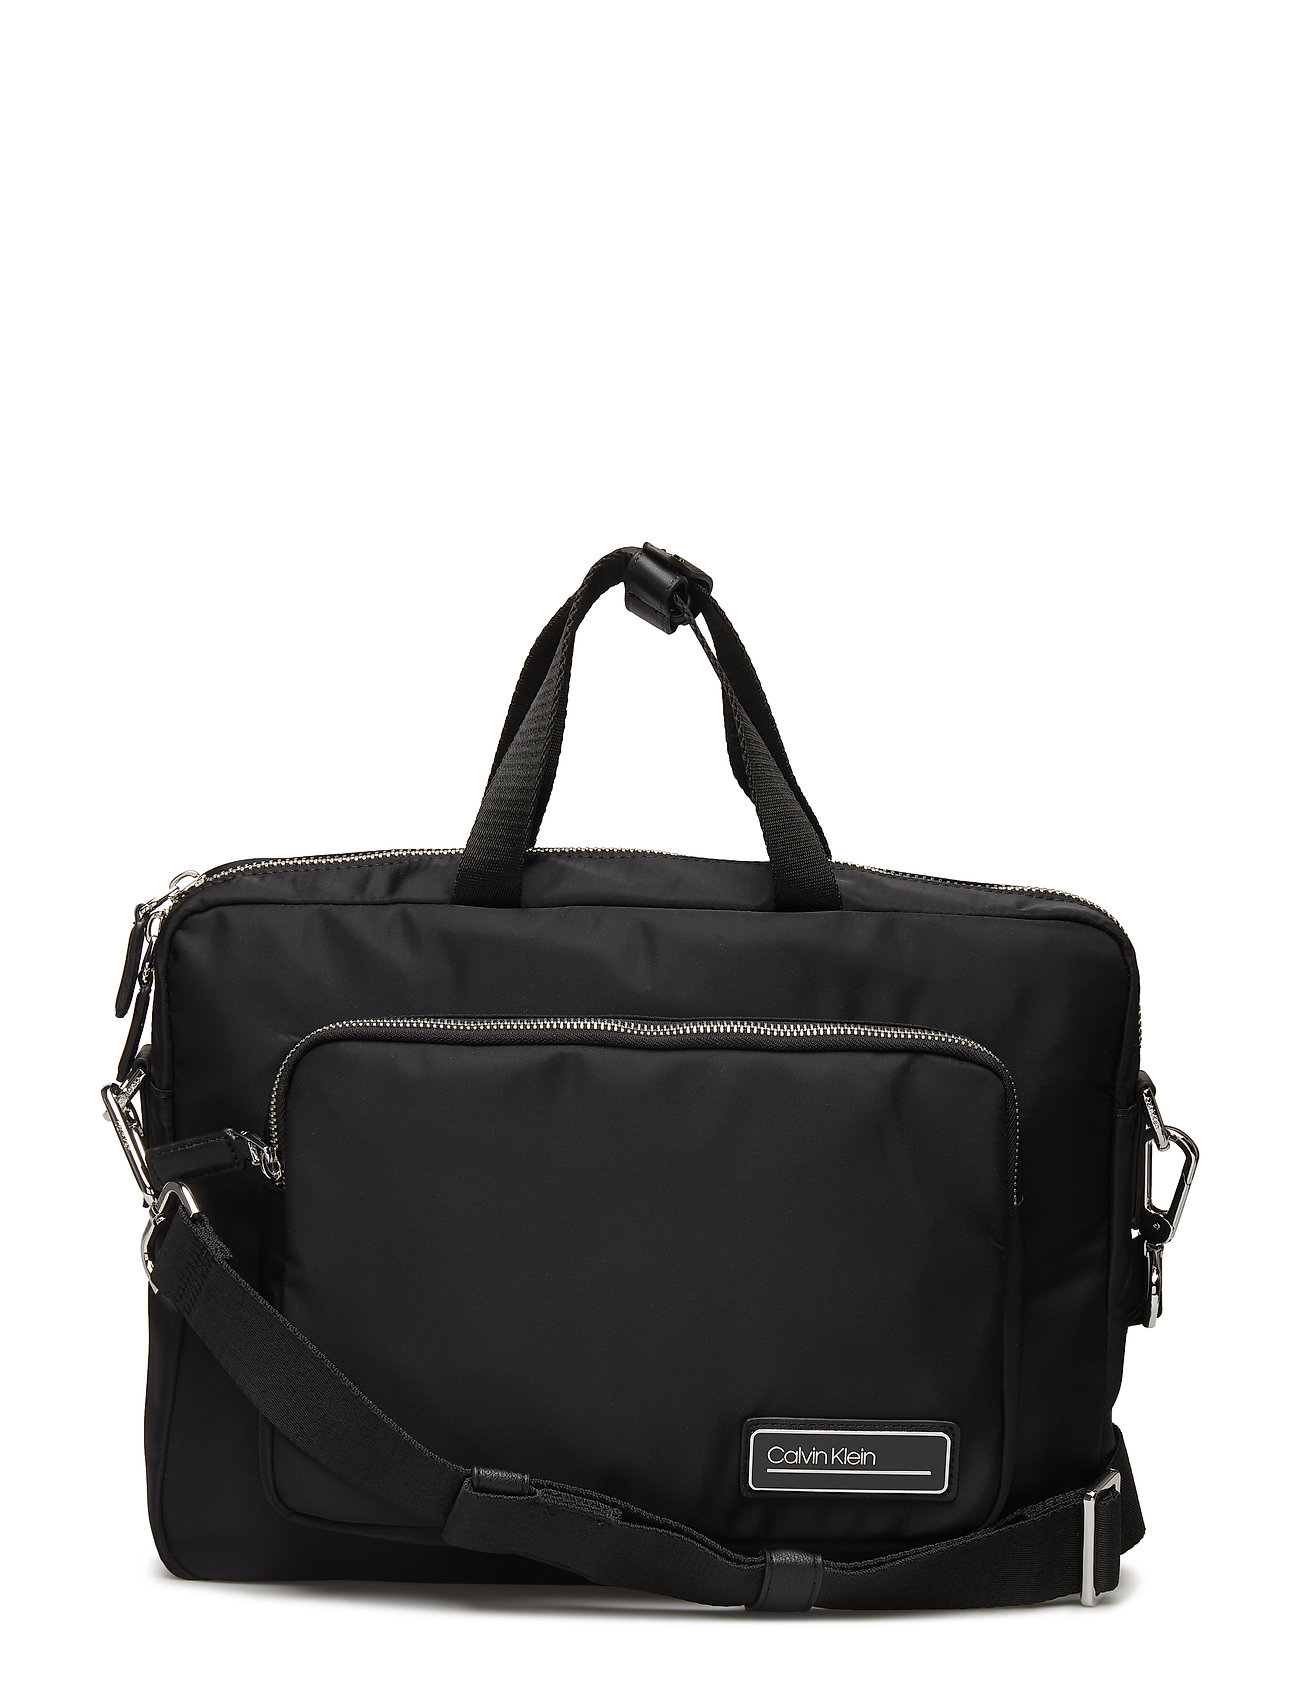 Calvin Klein PRIMARY 1 GUSSET LAPTOP BAG